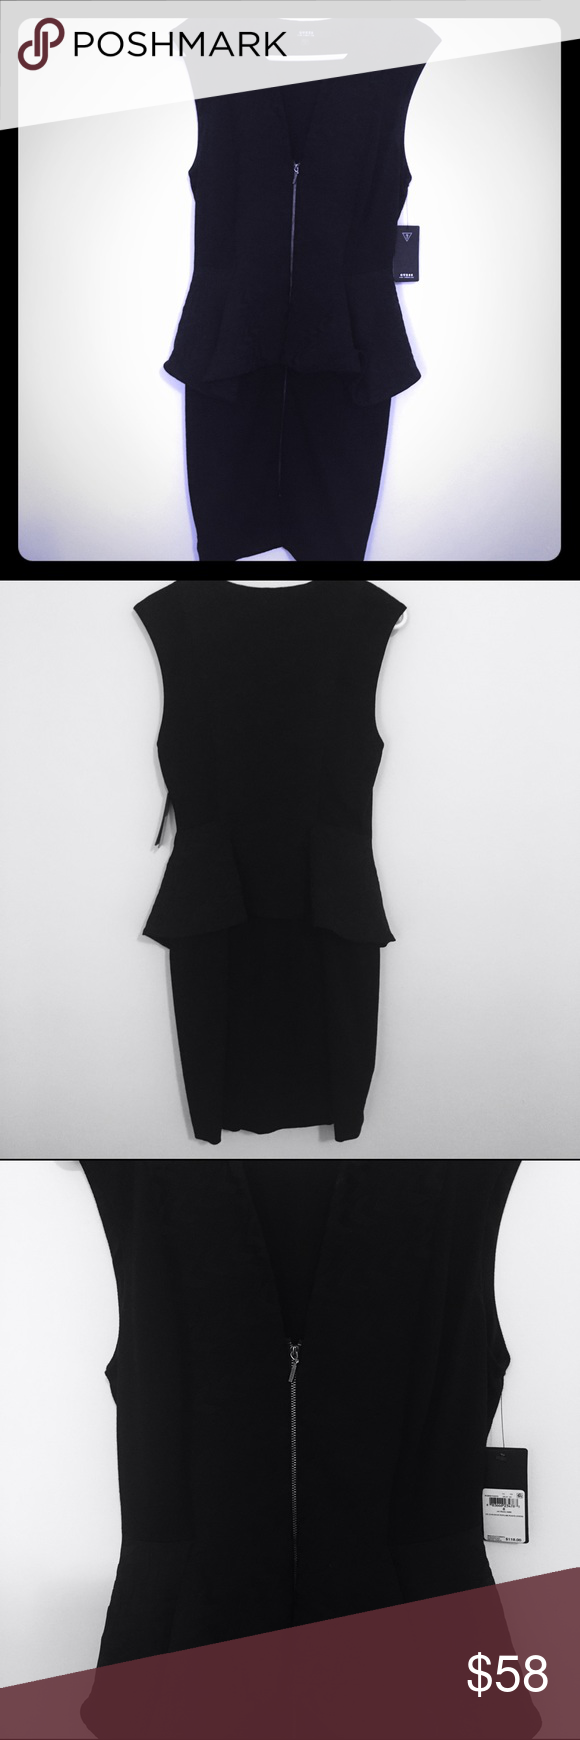 Guess front zip peplum black dress New with tags black dress. Peplum detail. Front zip the entire dress length. Some stretch. 60% Nylon 35% Polyester 5% Spandex. Guess Dresses